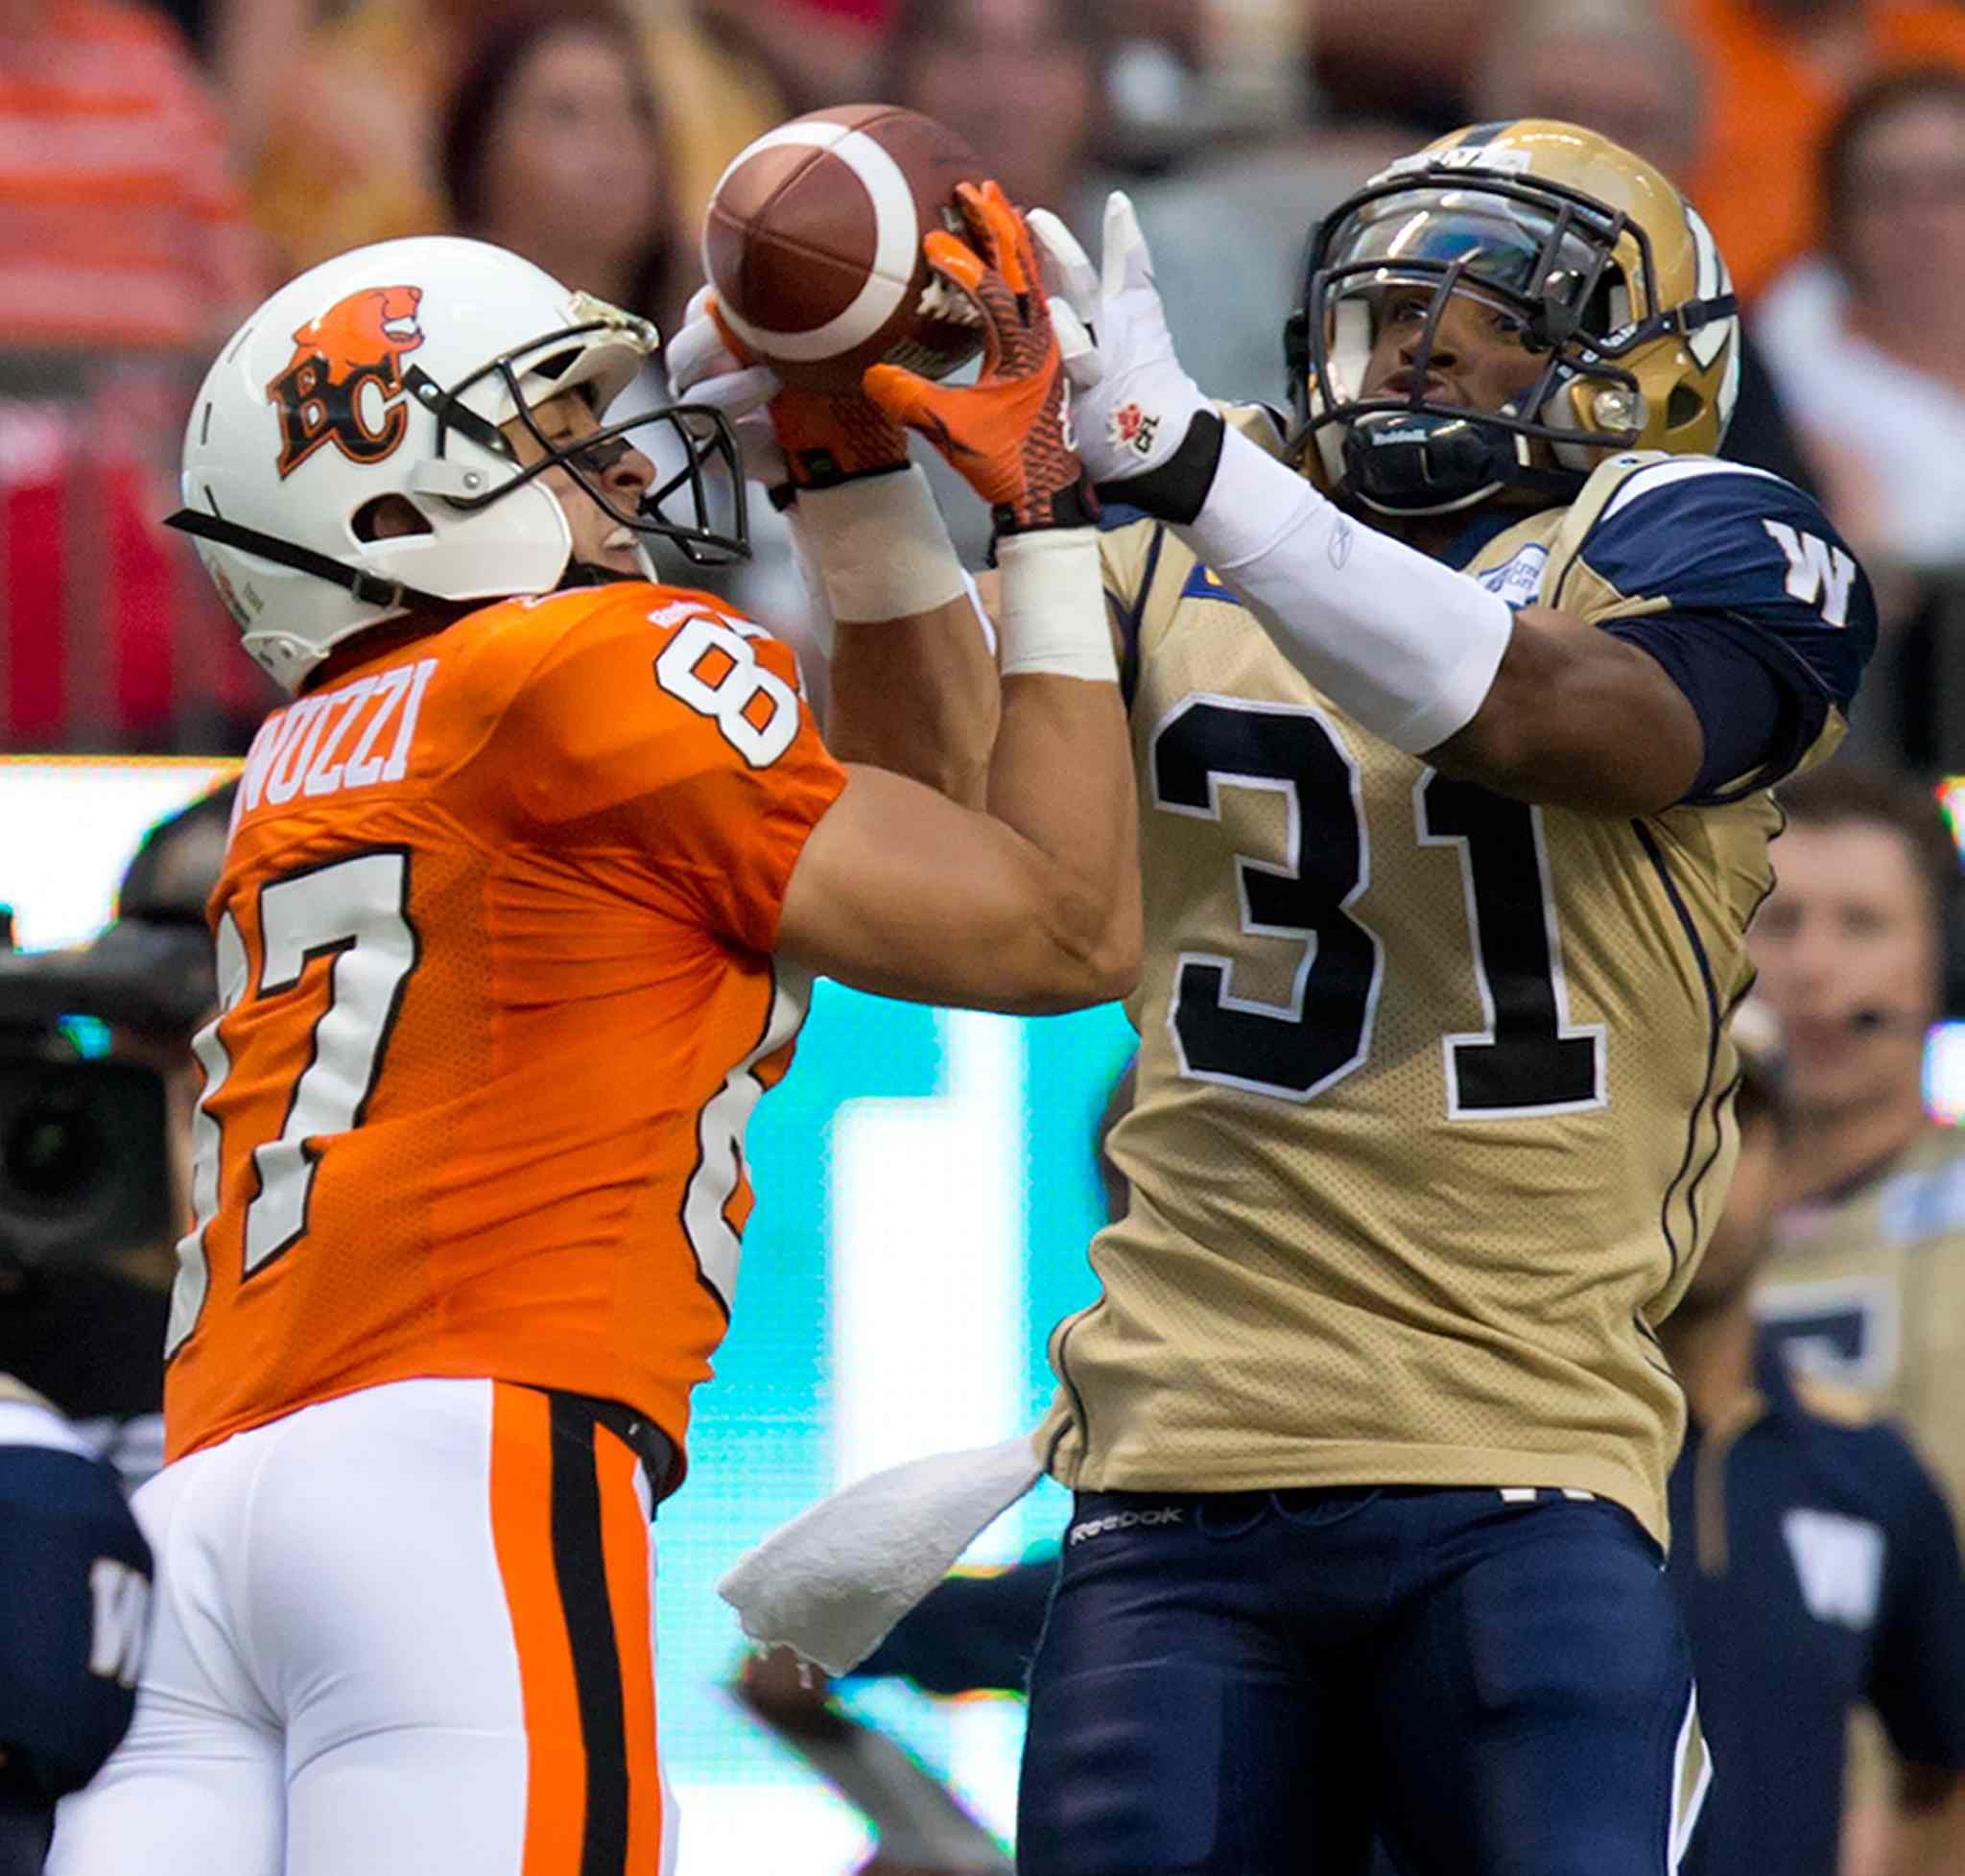 Winnipeg Blue Bombers' Maurice Leggett, right, prevents B.C. Lions' Marco Iannuzzi from making the receptionn during the first half of Friday's game.